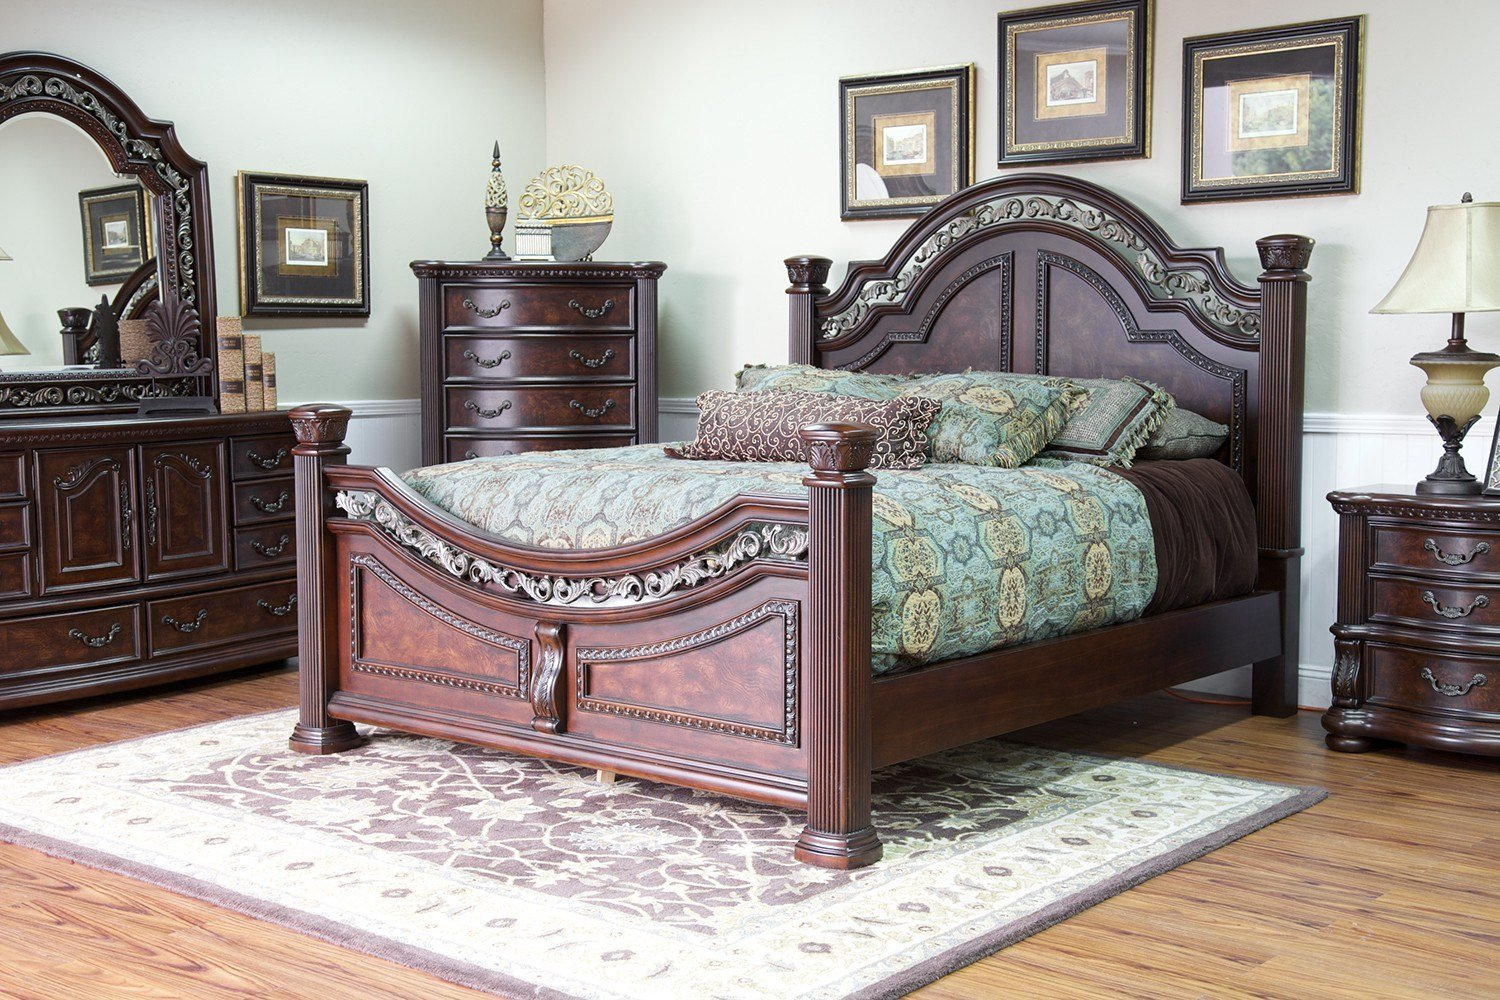 Best Furniture Luxury Defined Mor Furniture Portland Or — Ossocharlotte Com With Pictures